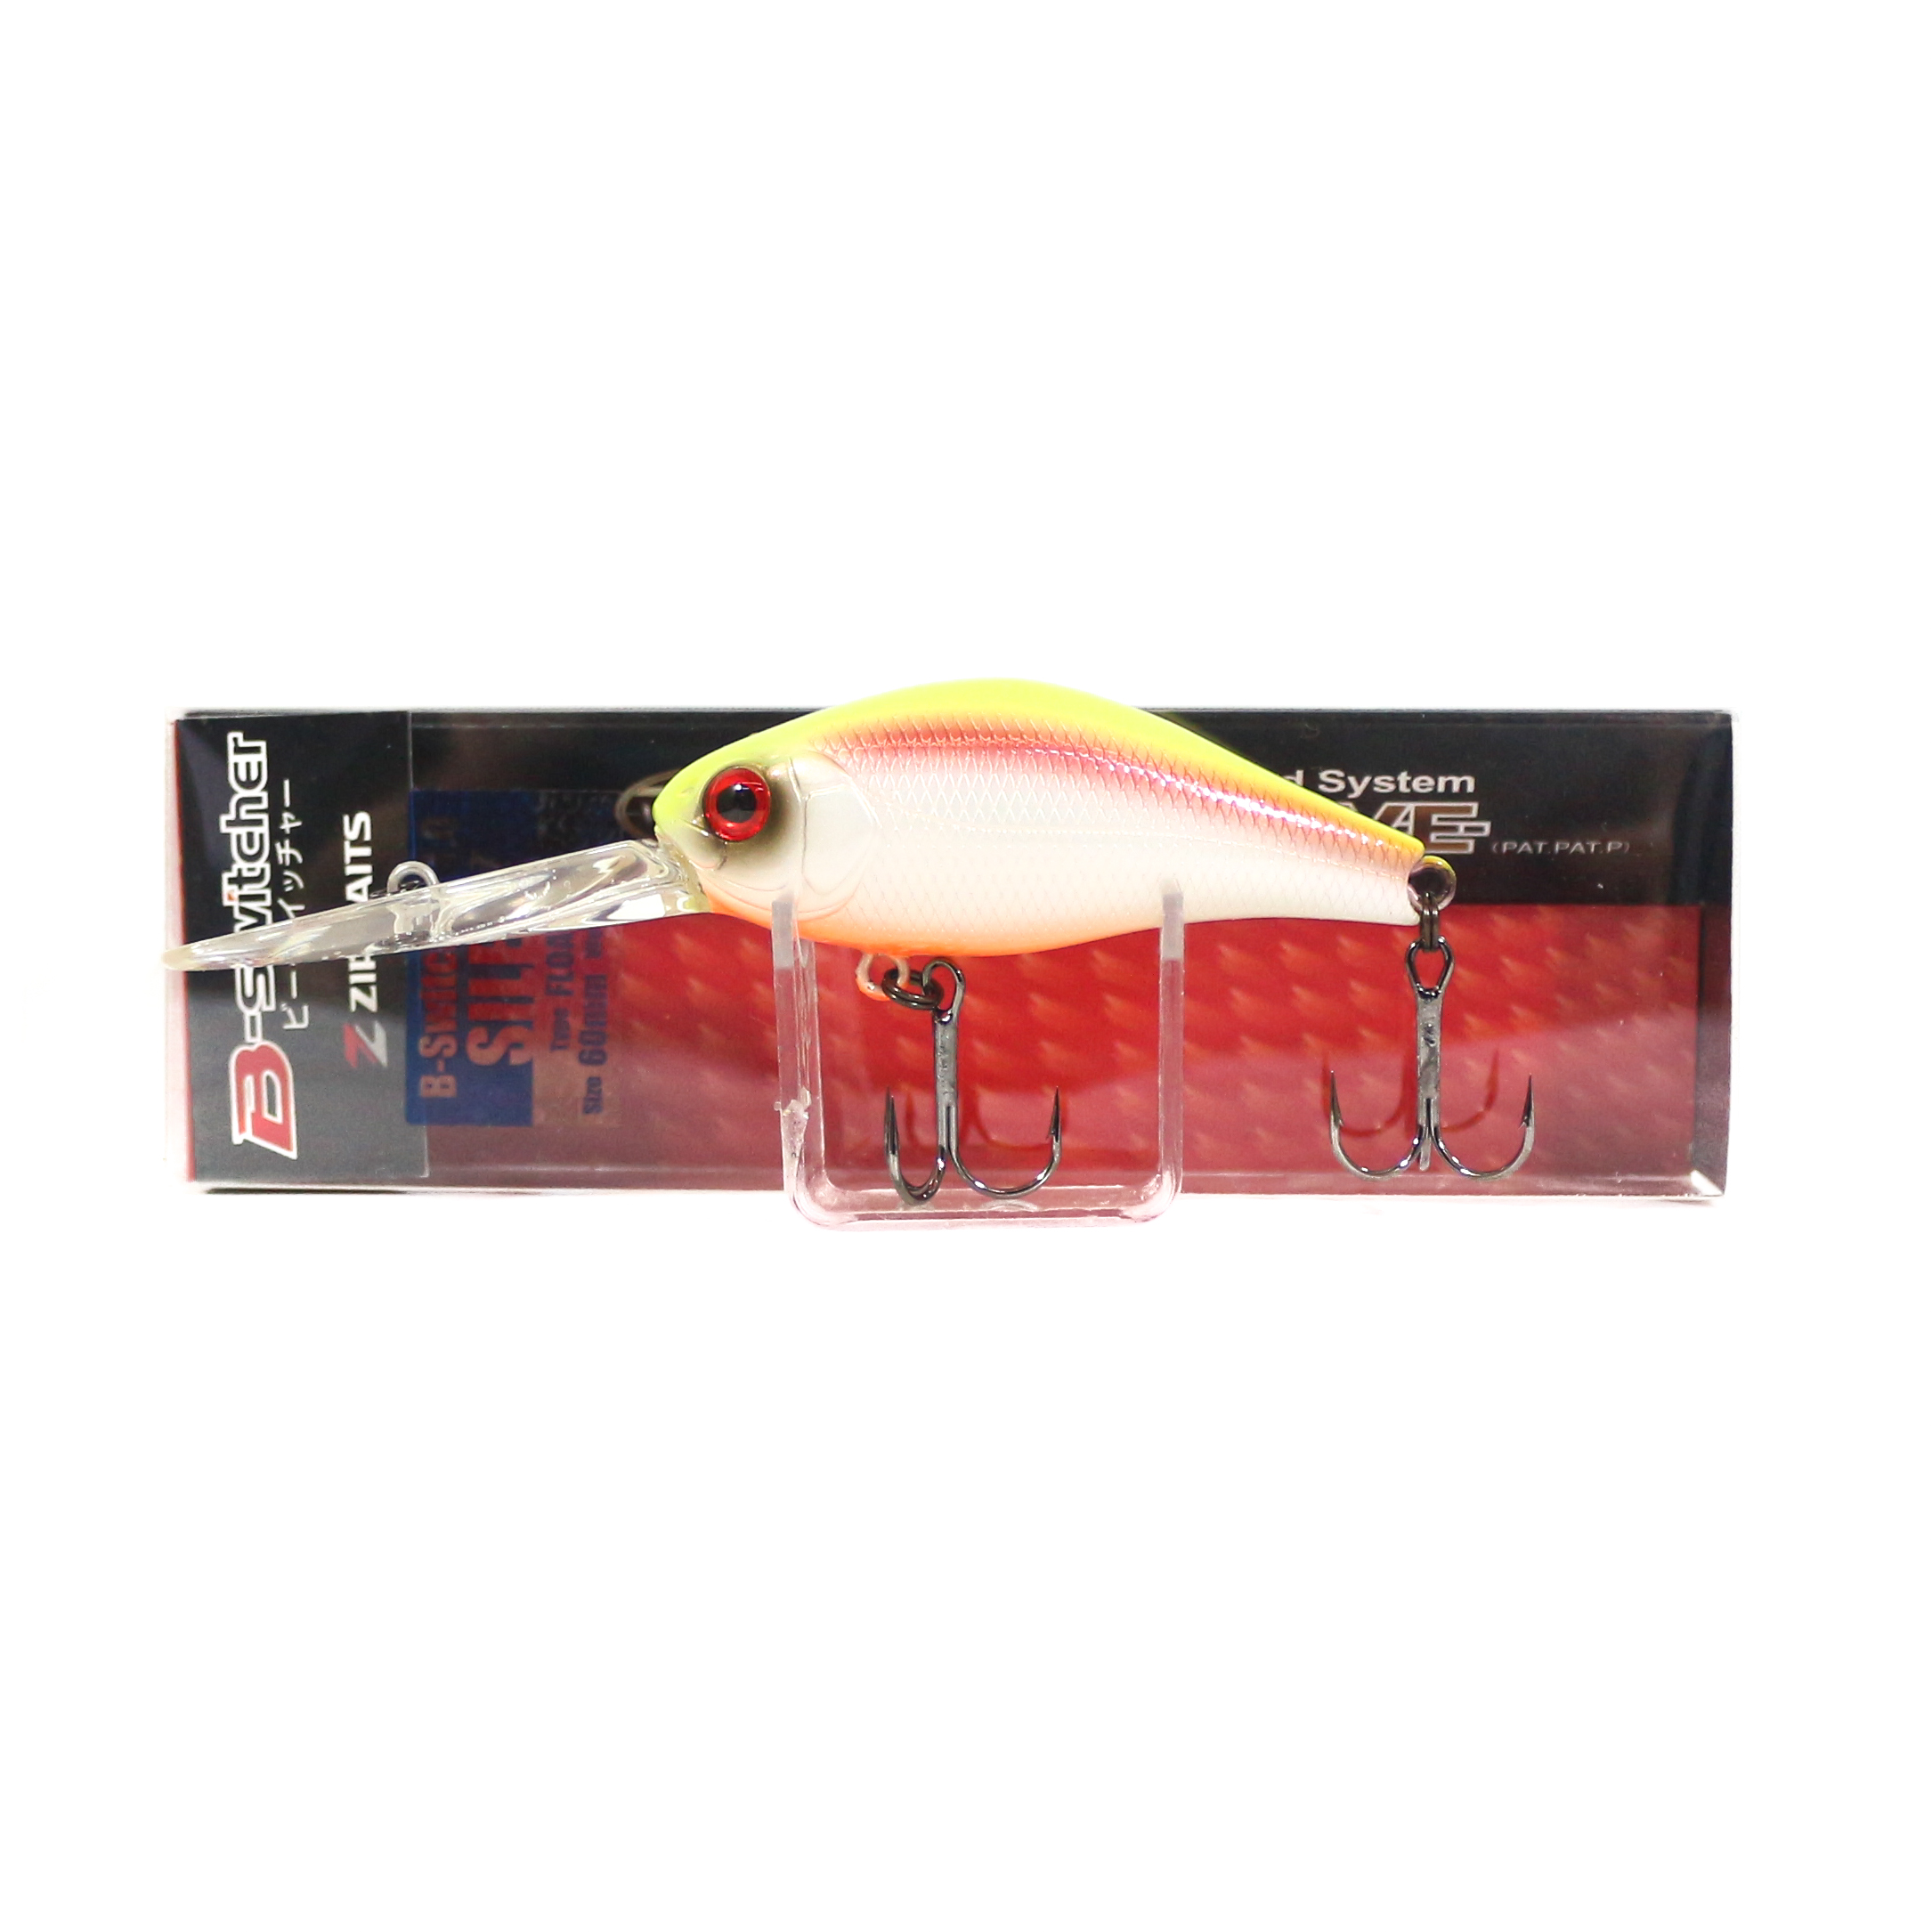 Zipbaits B Switcher 3.0 65mm Floating Lure 673 (7276)